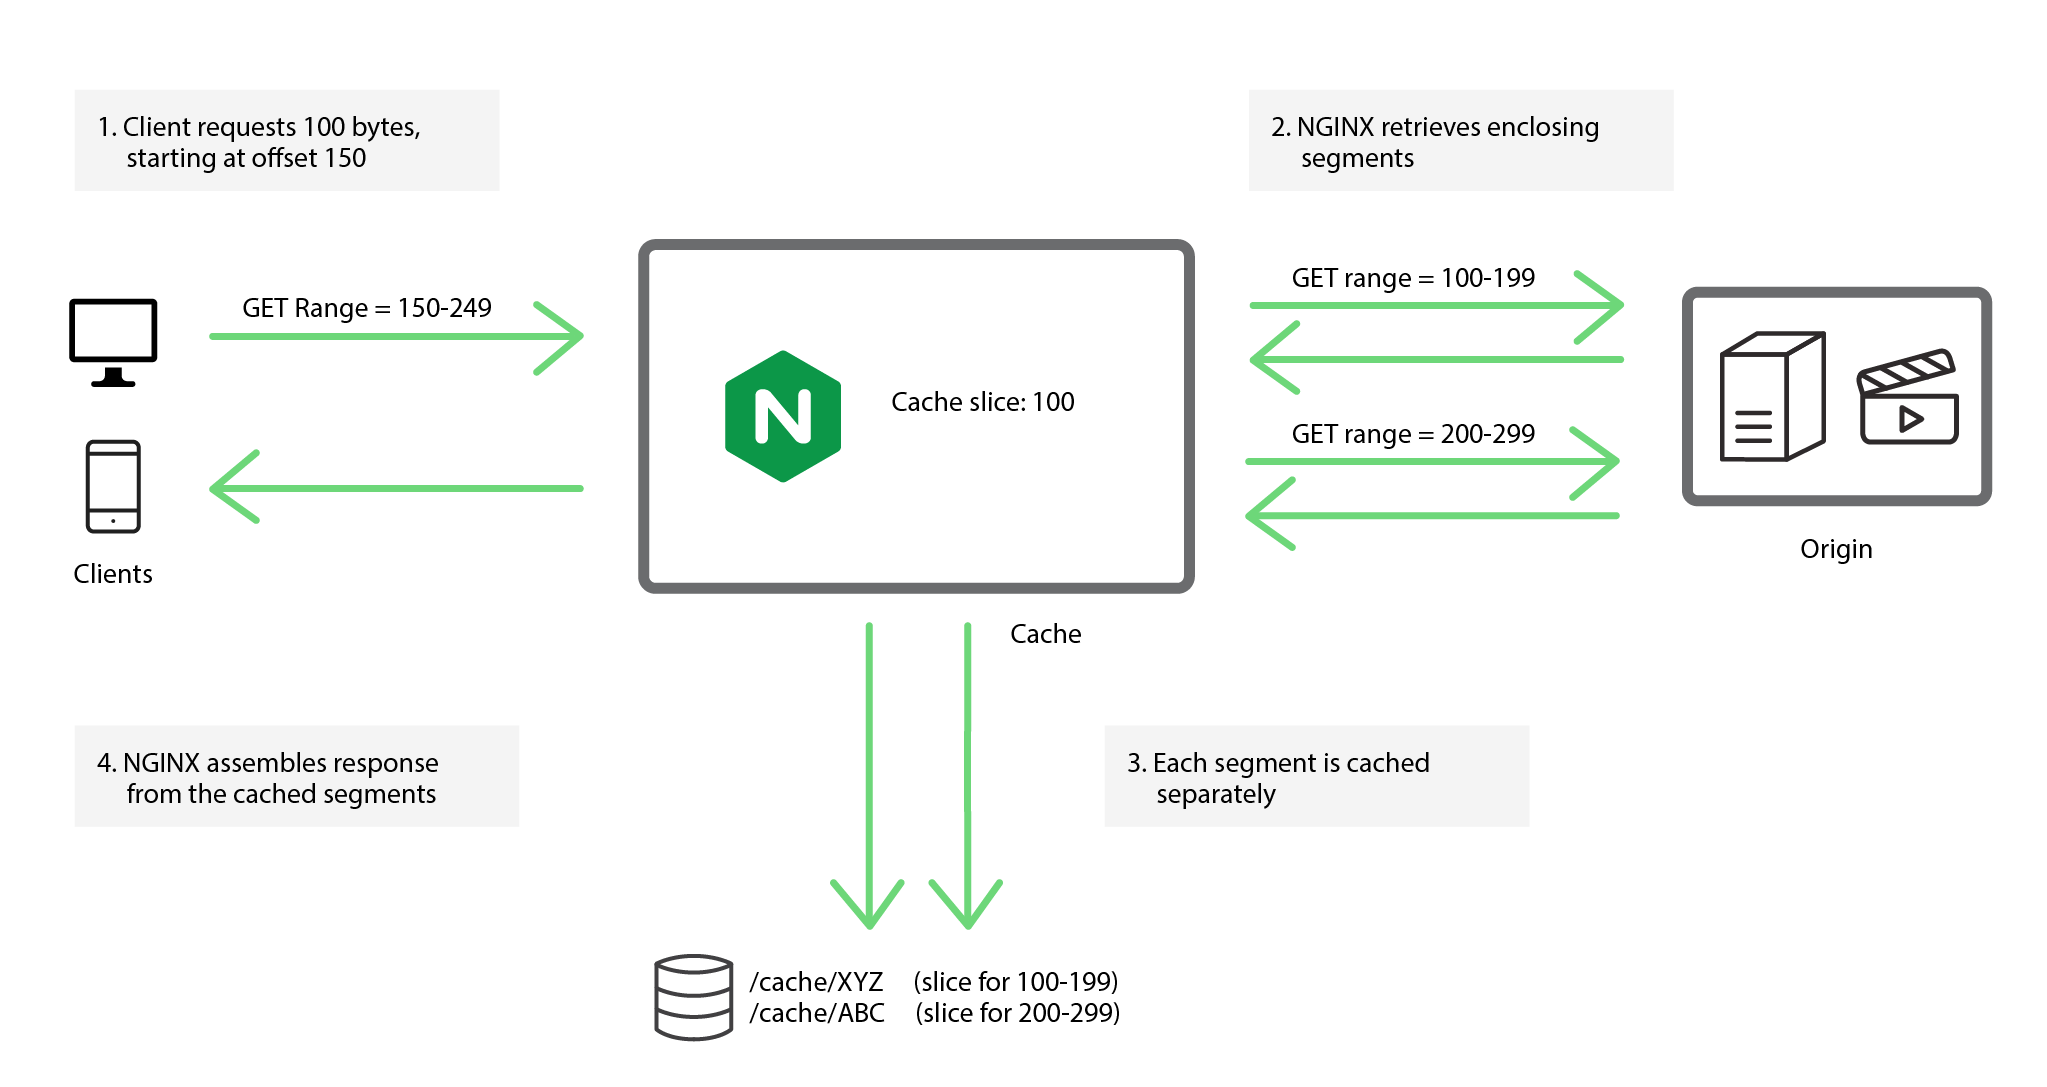 Detailed overview of cache slicing with NGINX